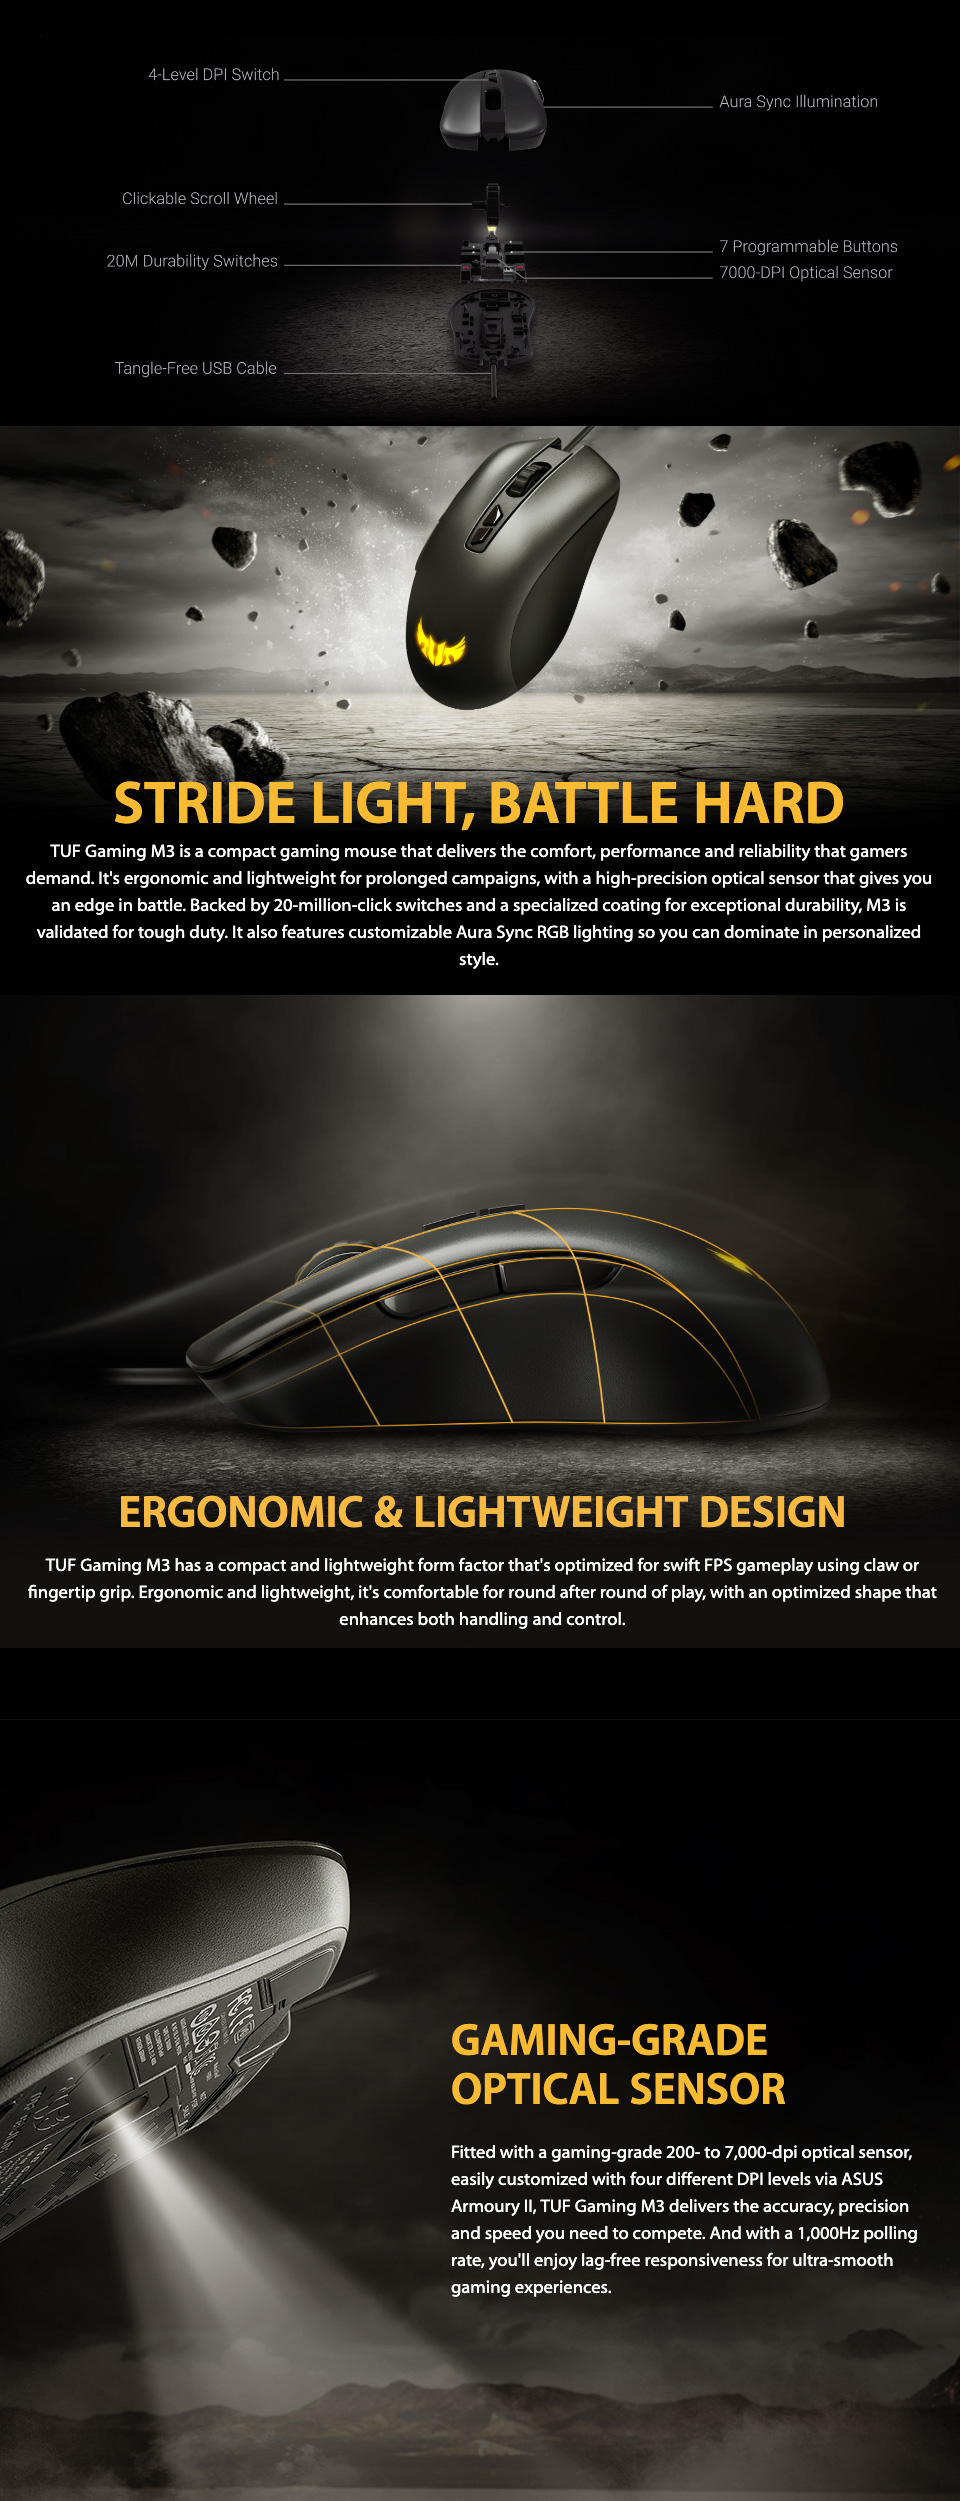 ASUS TUF M3 RGB Gaming Mouse features